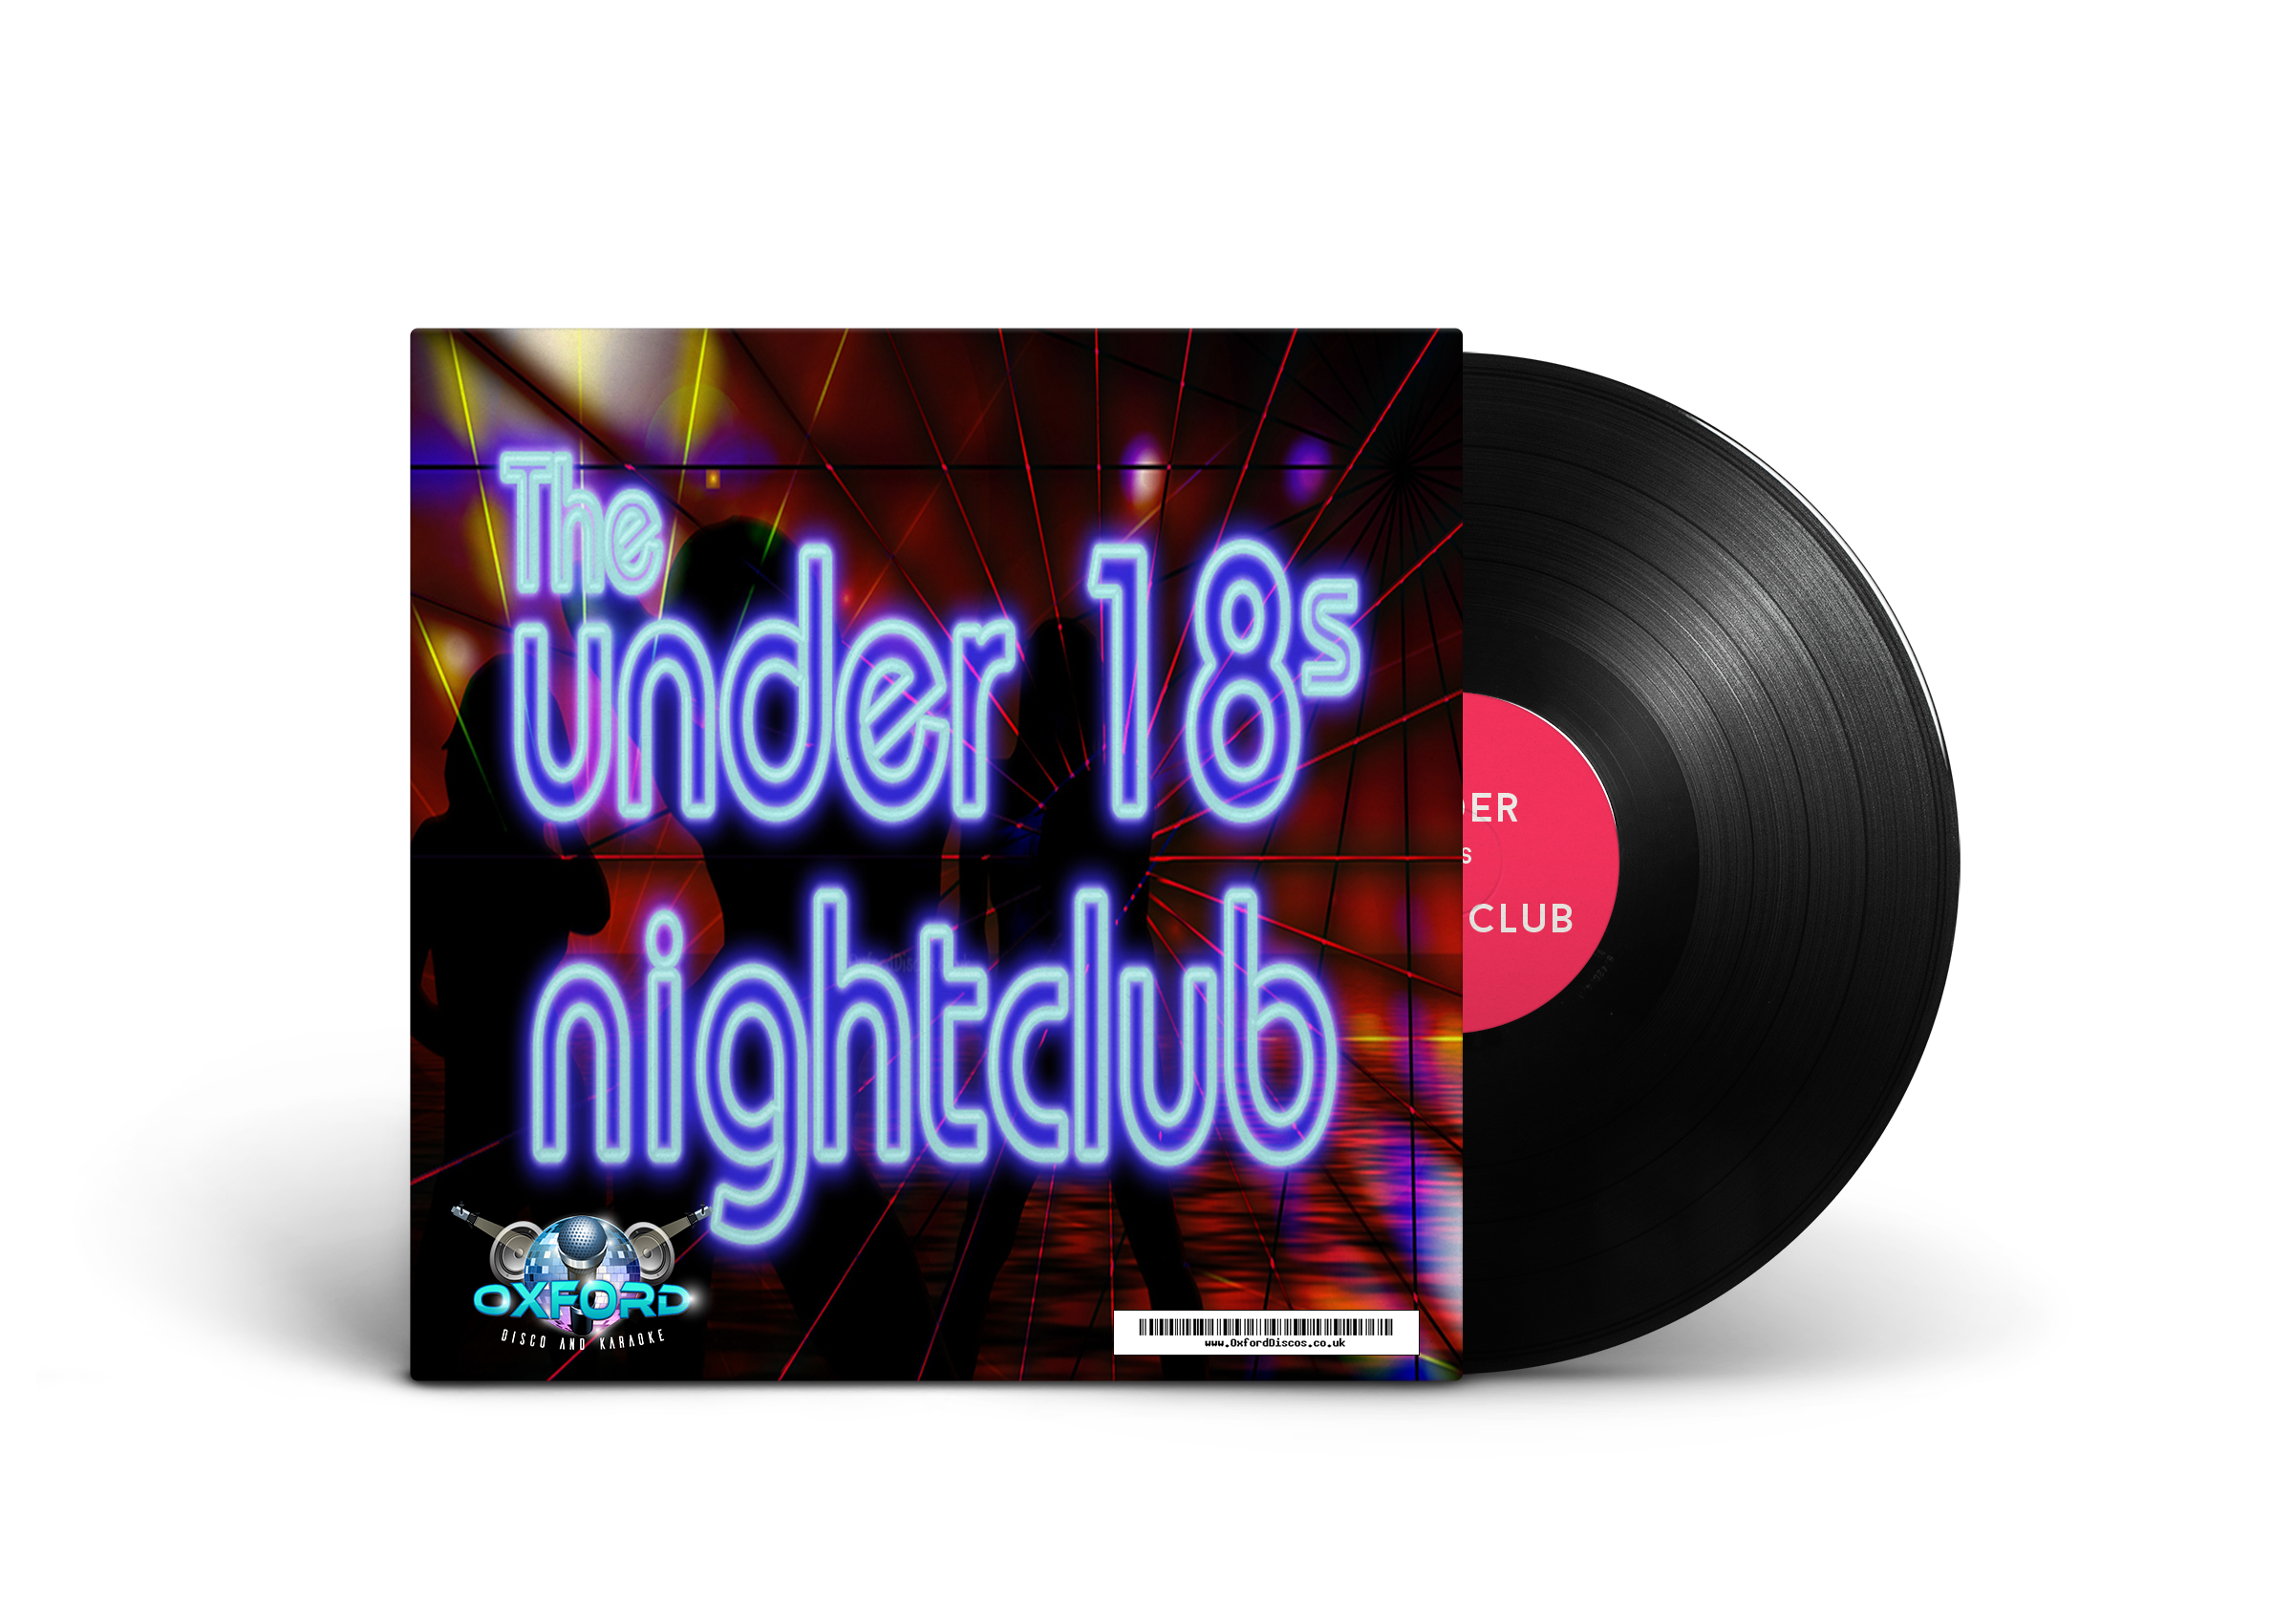 27 Under 18s Night Club